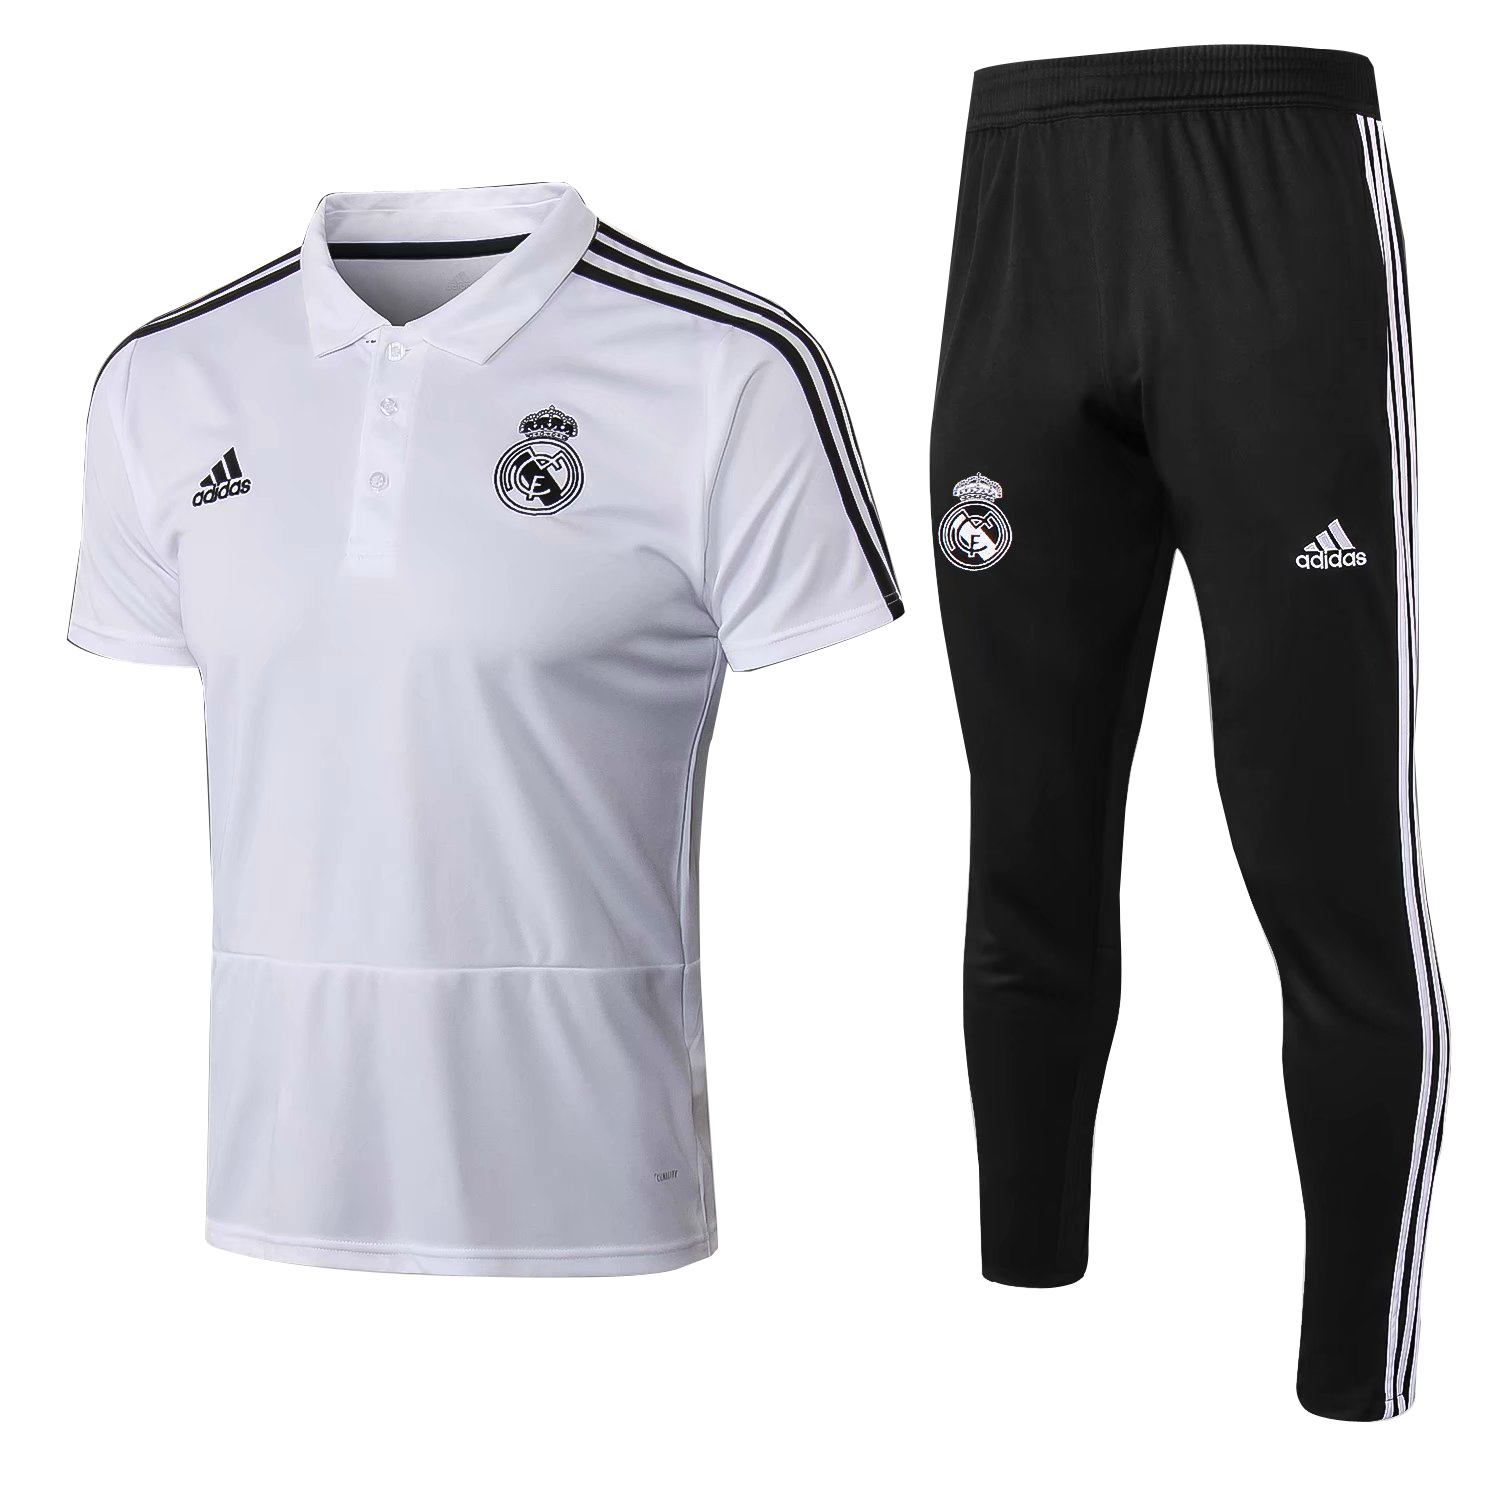 95b7df27263 US  29.8 - Real Madrid Polo + Pants Training Suit White 2018 19 -  www.fcsoccerworld.com